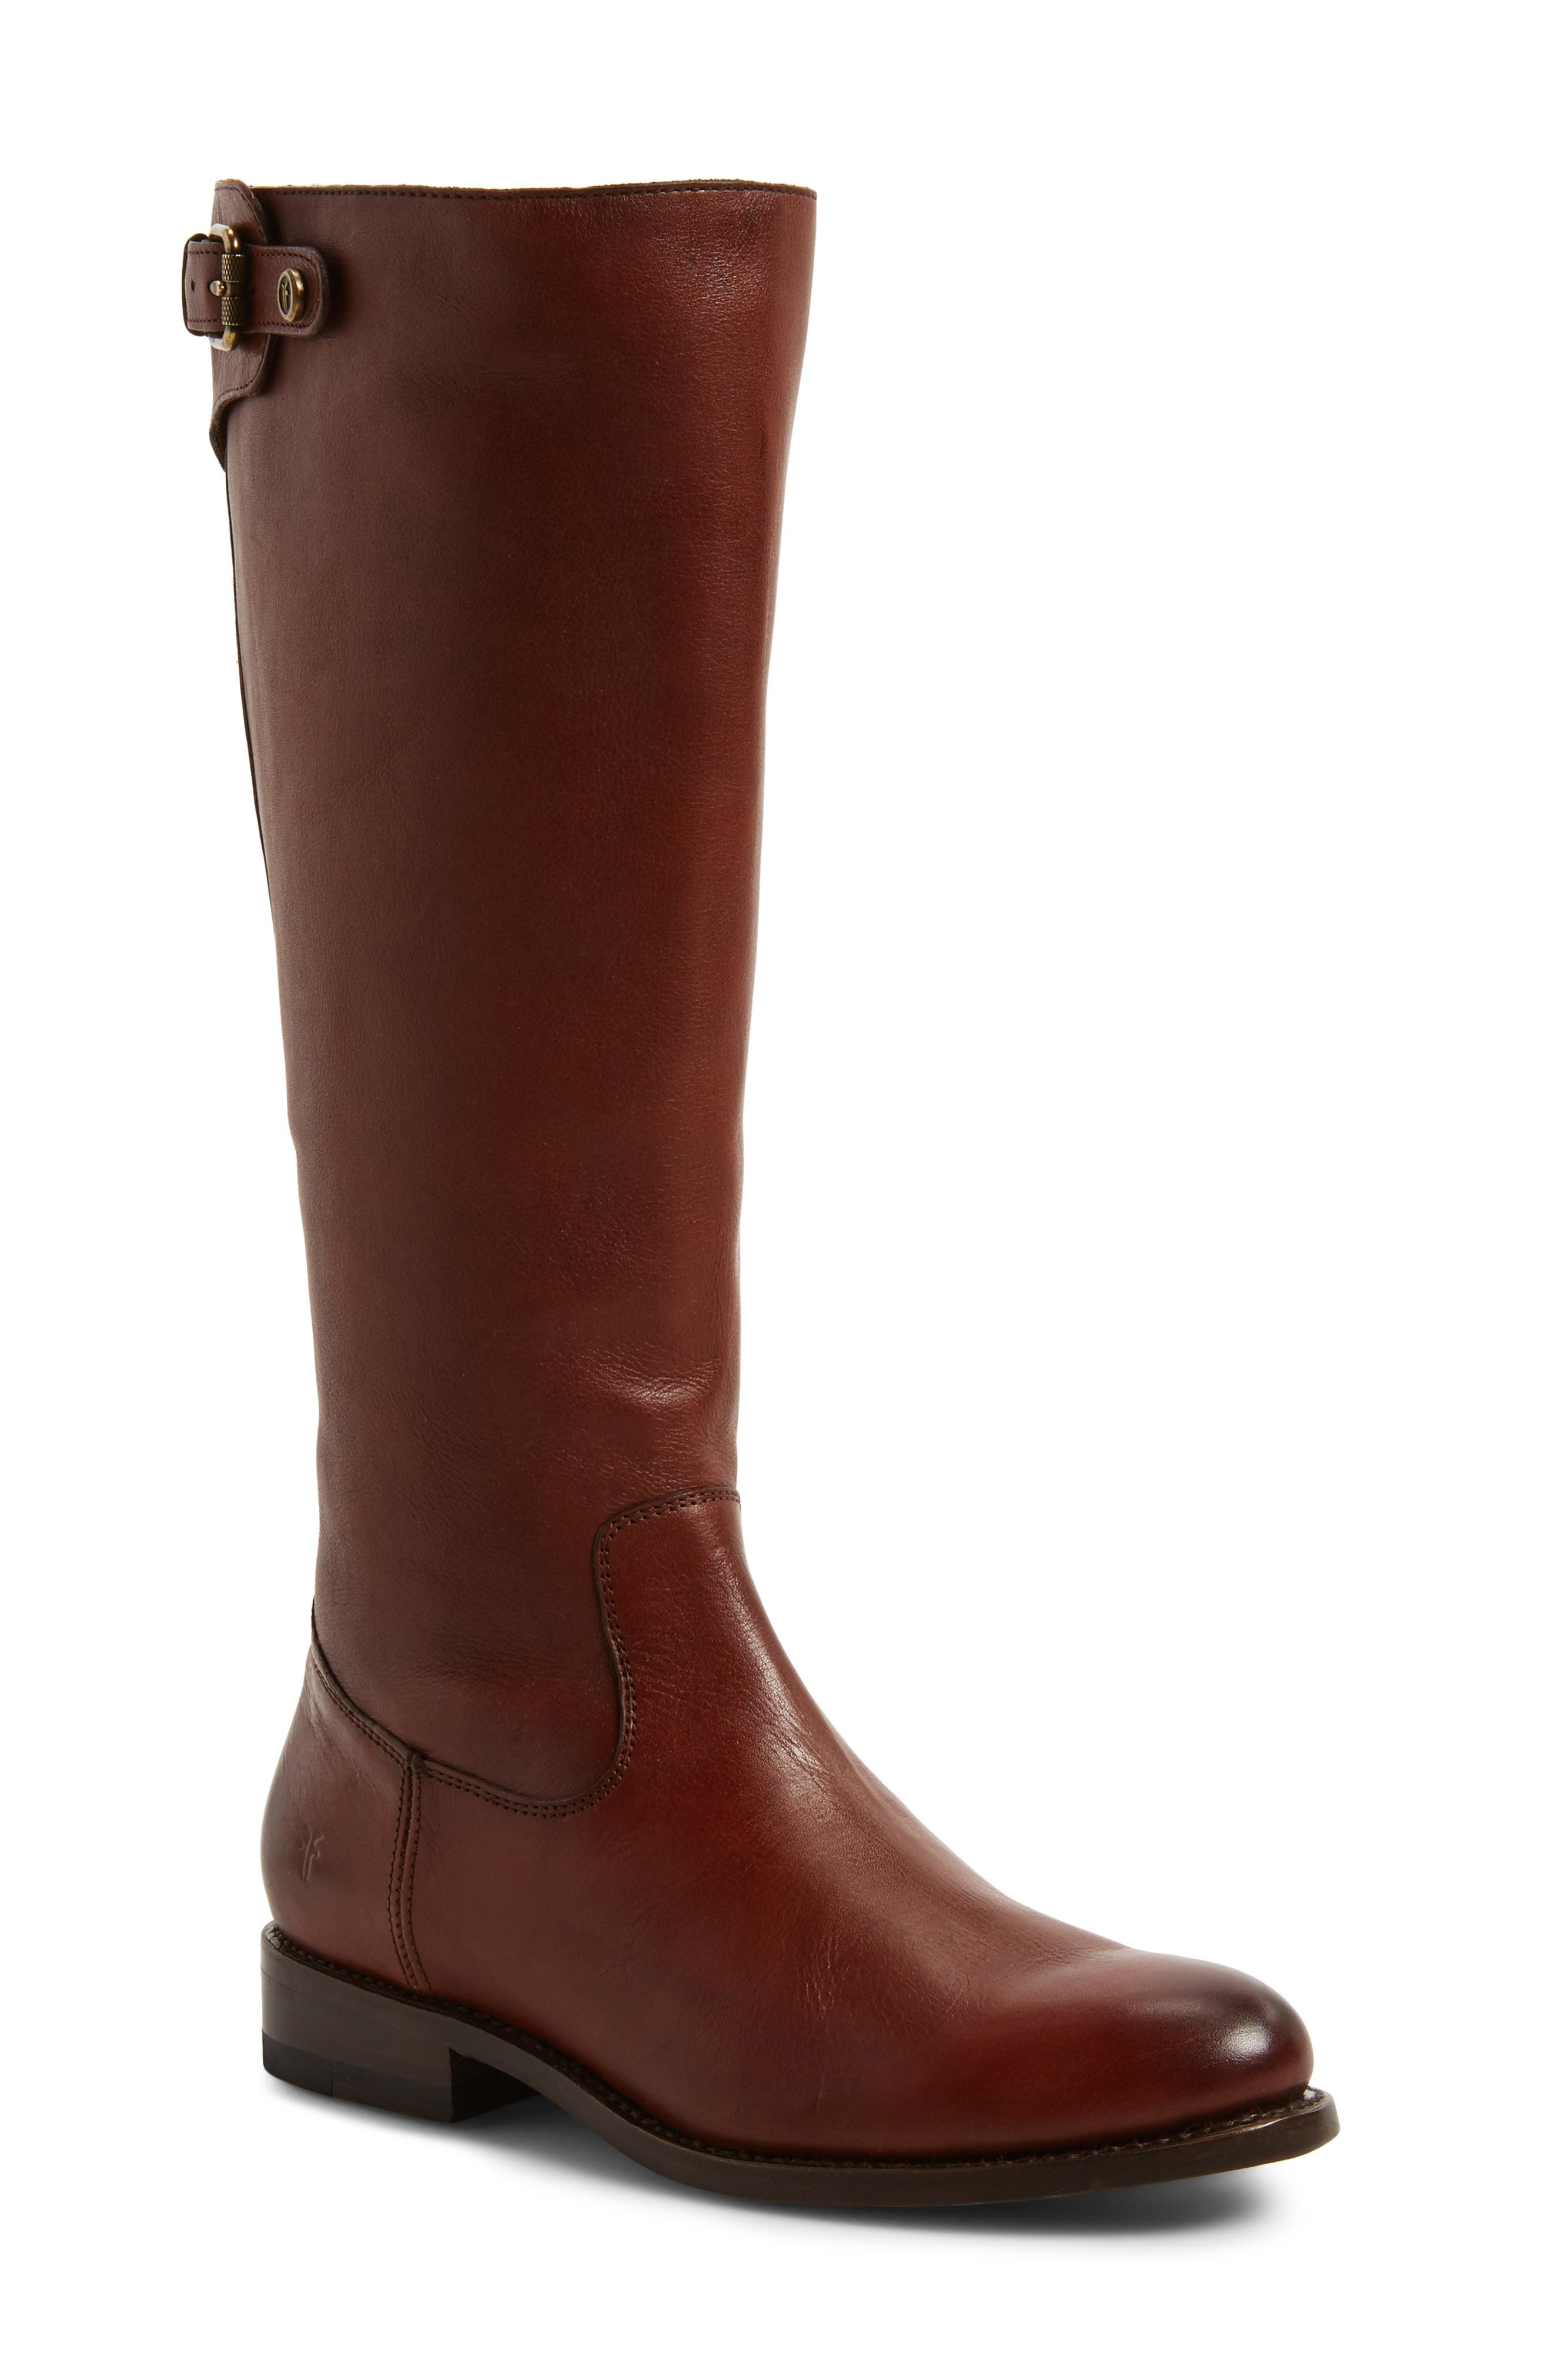 Frye Jayden Buckle Back Zip Boot, Ext Calf- Brown